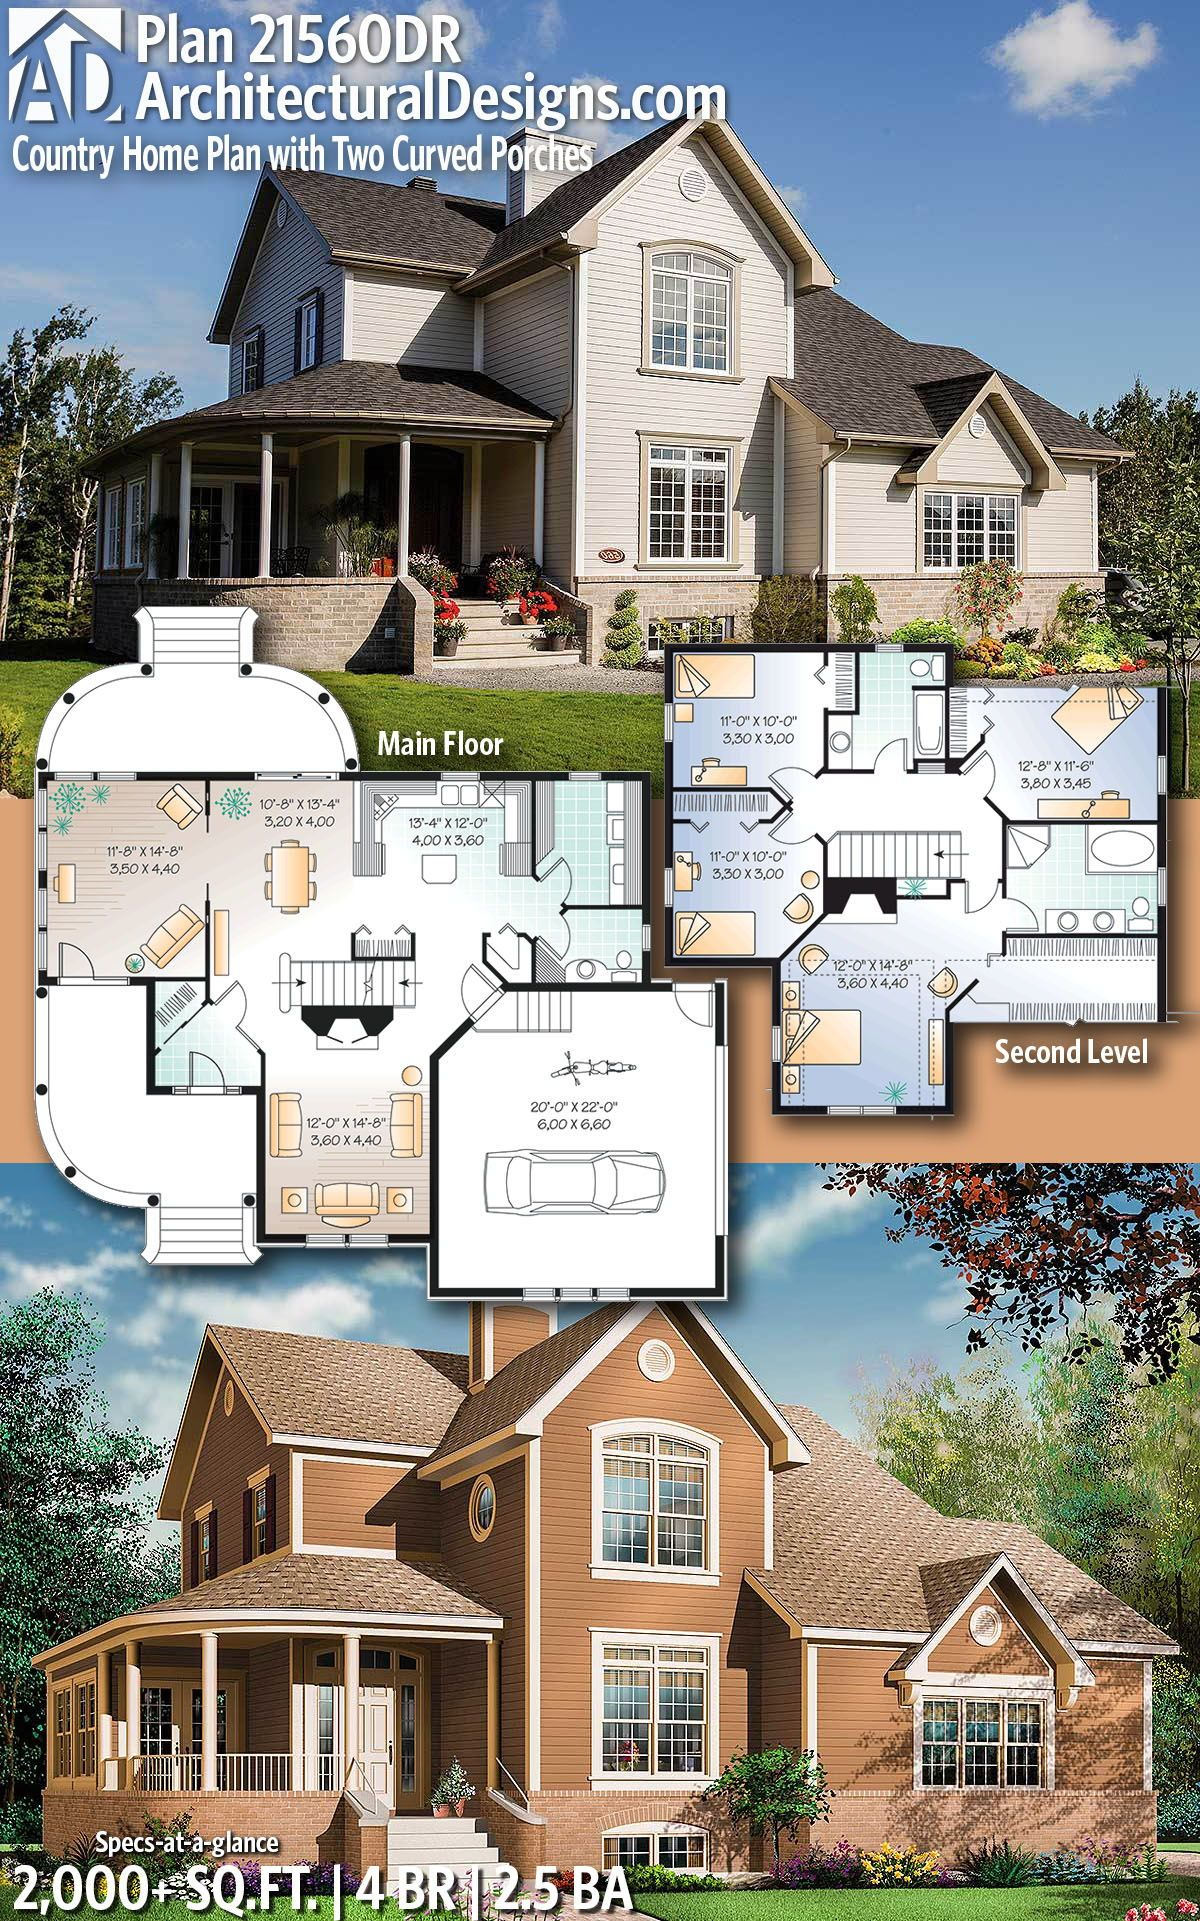 Architectural designs home plan dr gives you bedrooms baths and sq also pin by drummond house plans on small  affordable rh pinterest